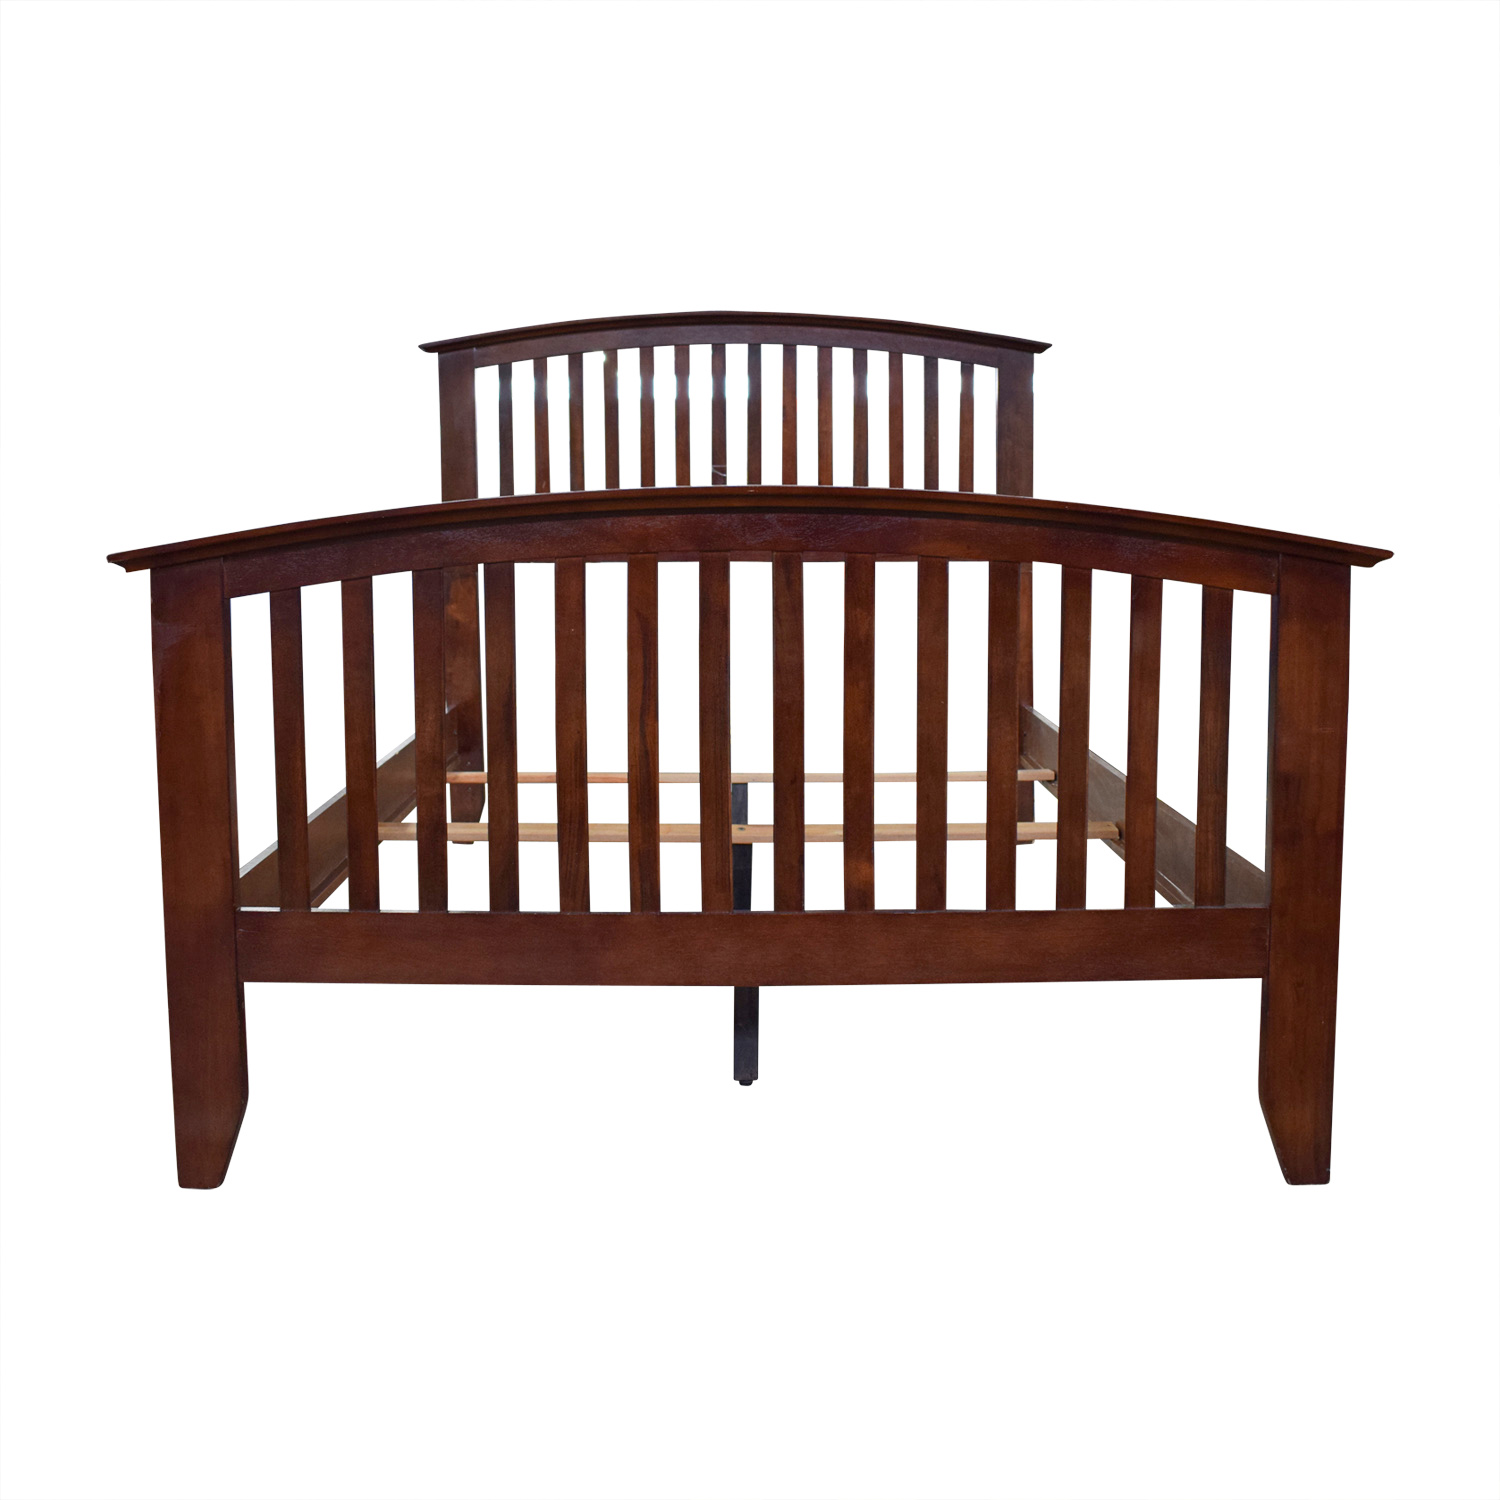 Bobs Furniture Bobs Furniture Wood Caged Full Bed Frame nyc